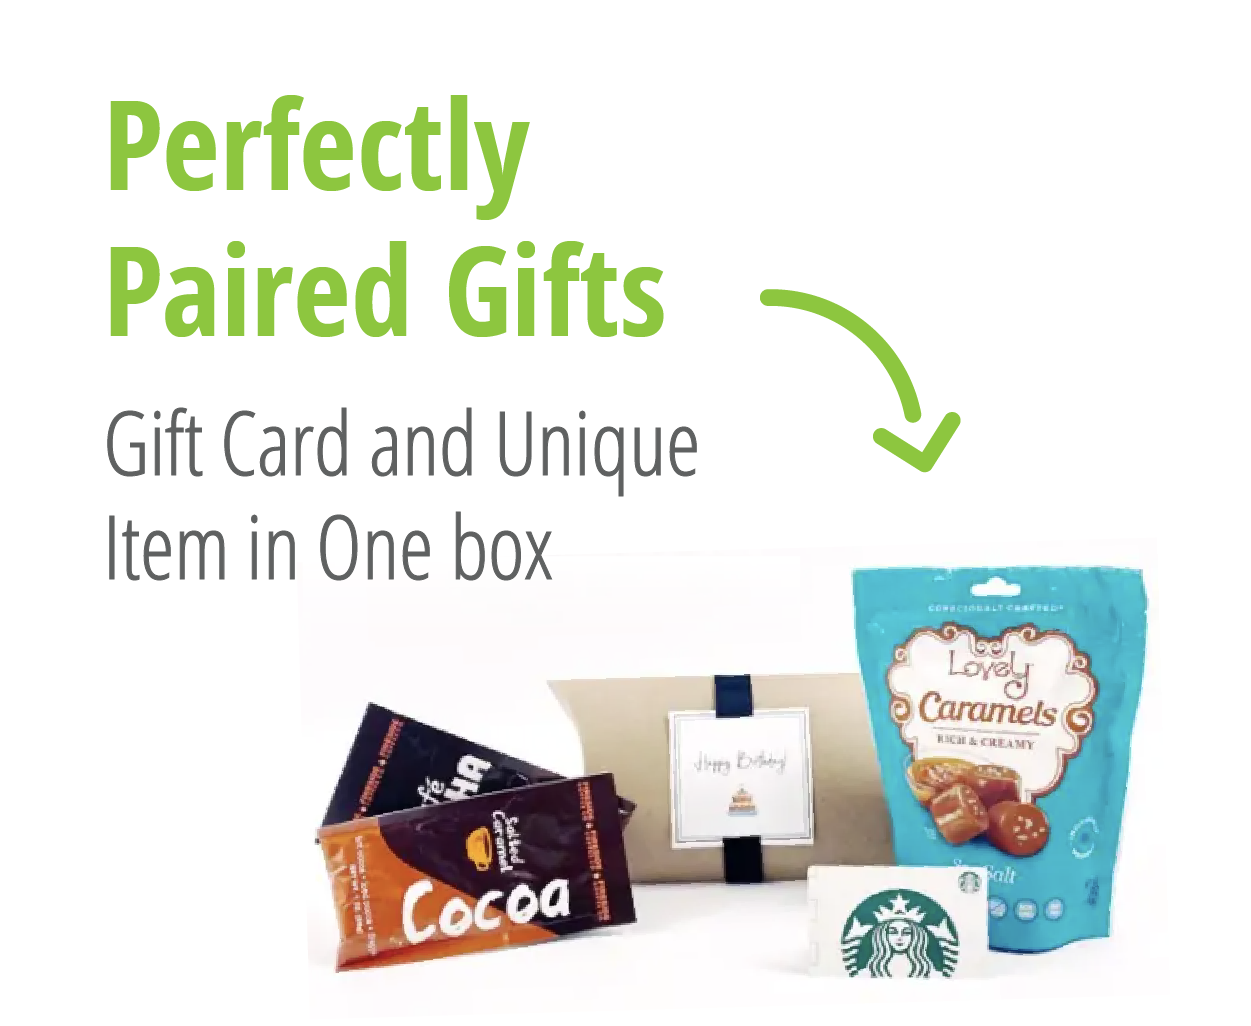 Perfectly Paired Gifts - Buy Gift Cards